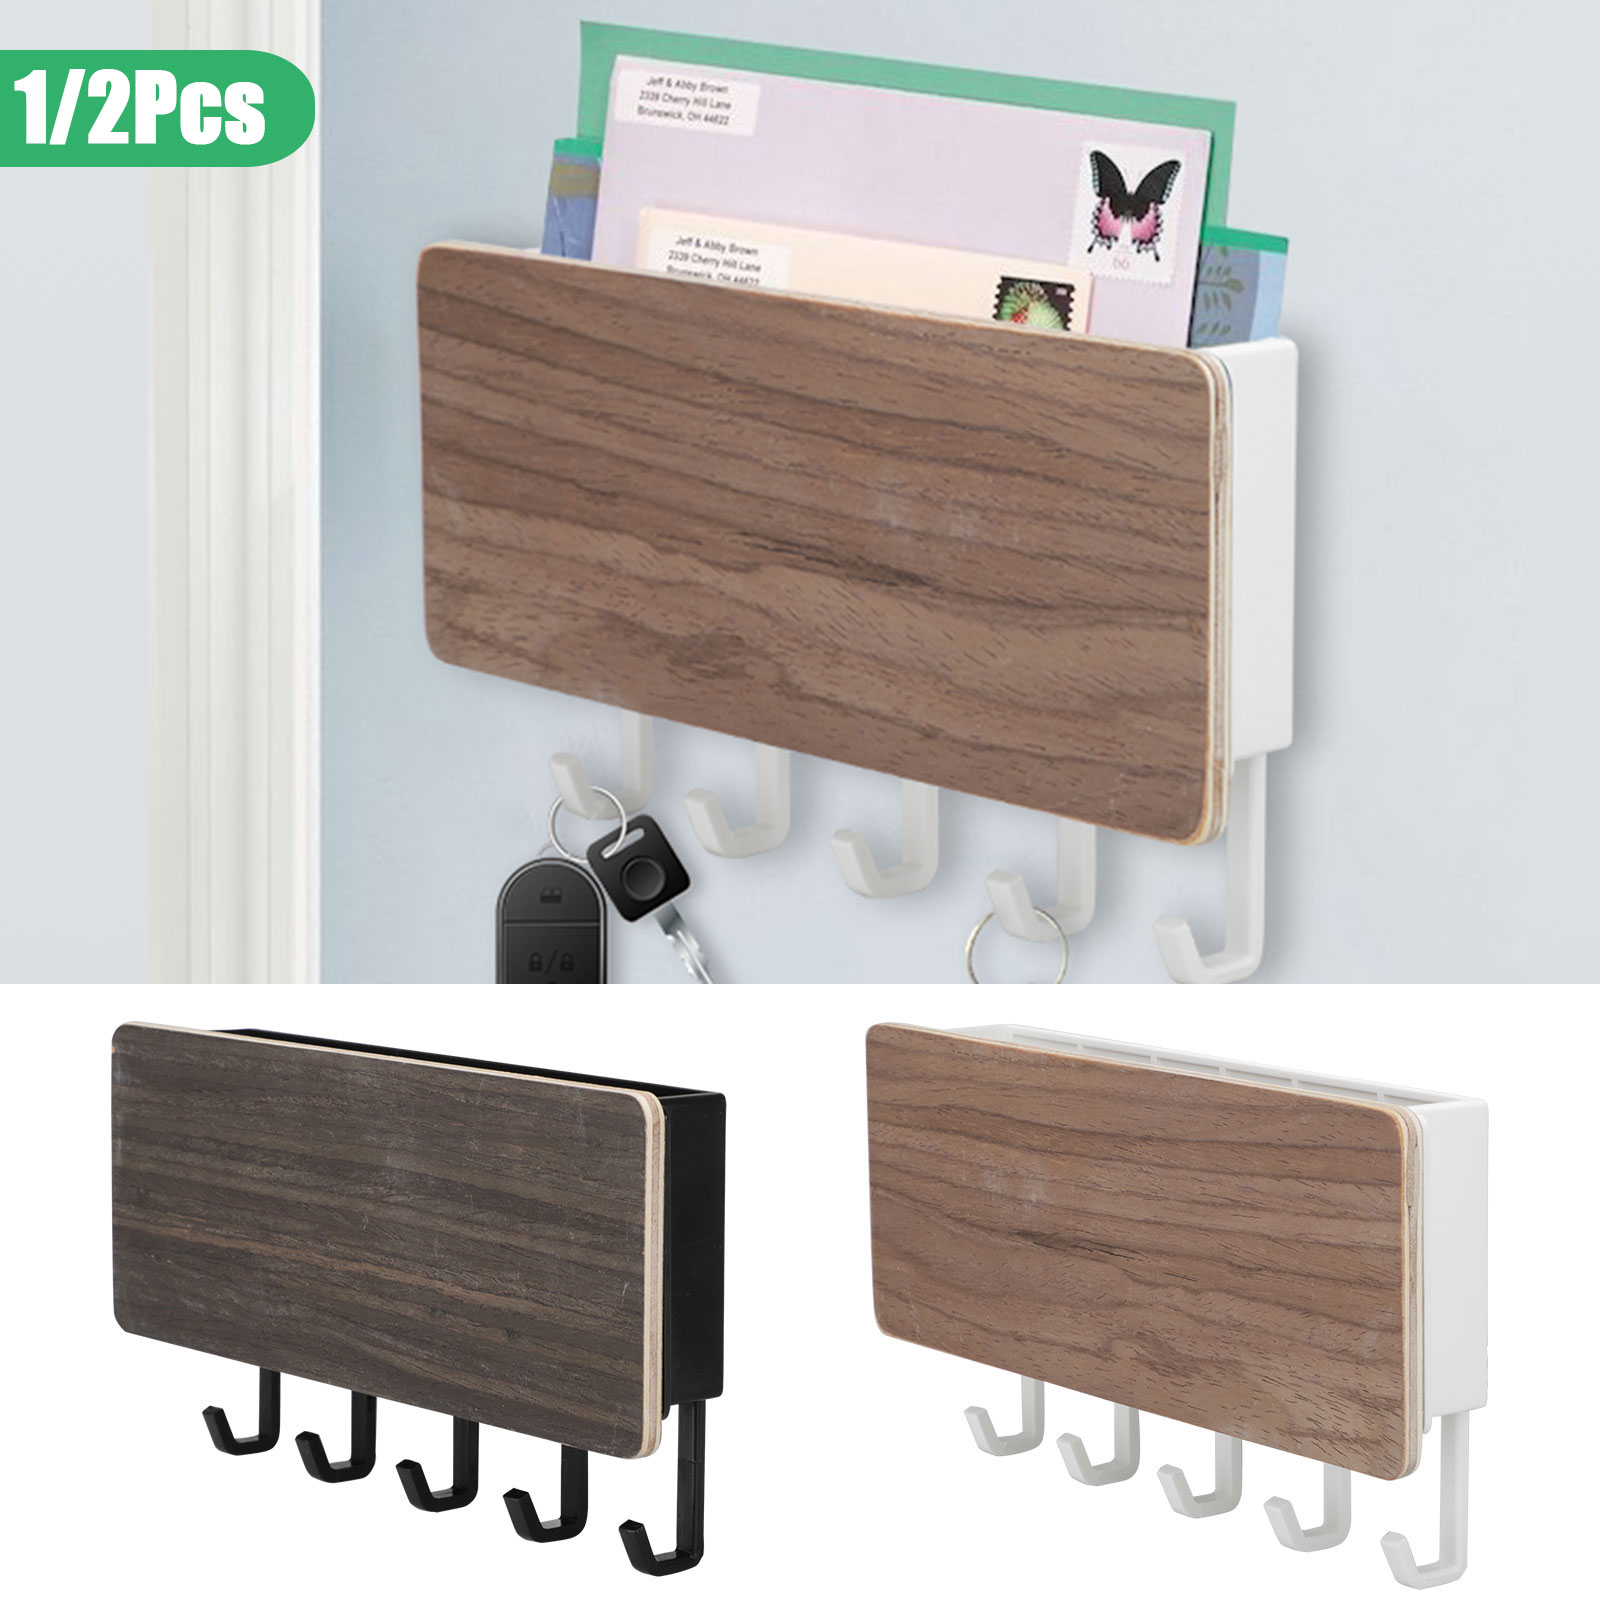 Wall Mount Mail Letter And Key Rack Holder Organizer Eeekit 2 1pcs Wooden Mail Letter Organizer Storage Box For Entryway Living Room Bedroom Hallway Kitchen Office Holds Mails Letters Keys Magazines Walmart Com